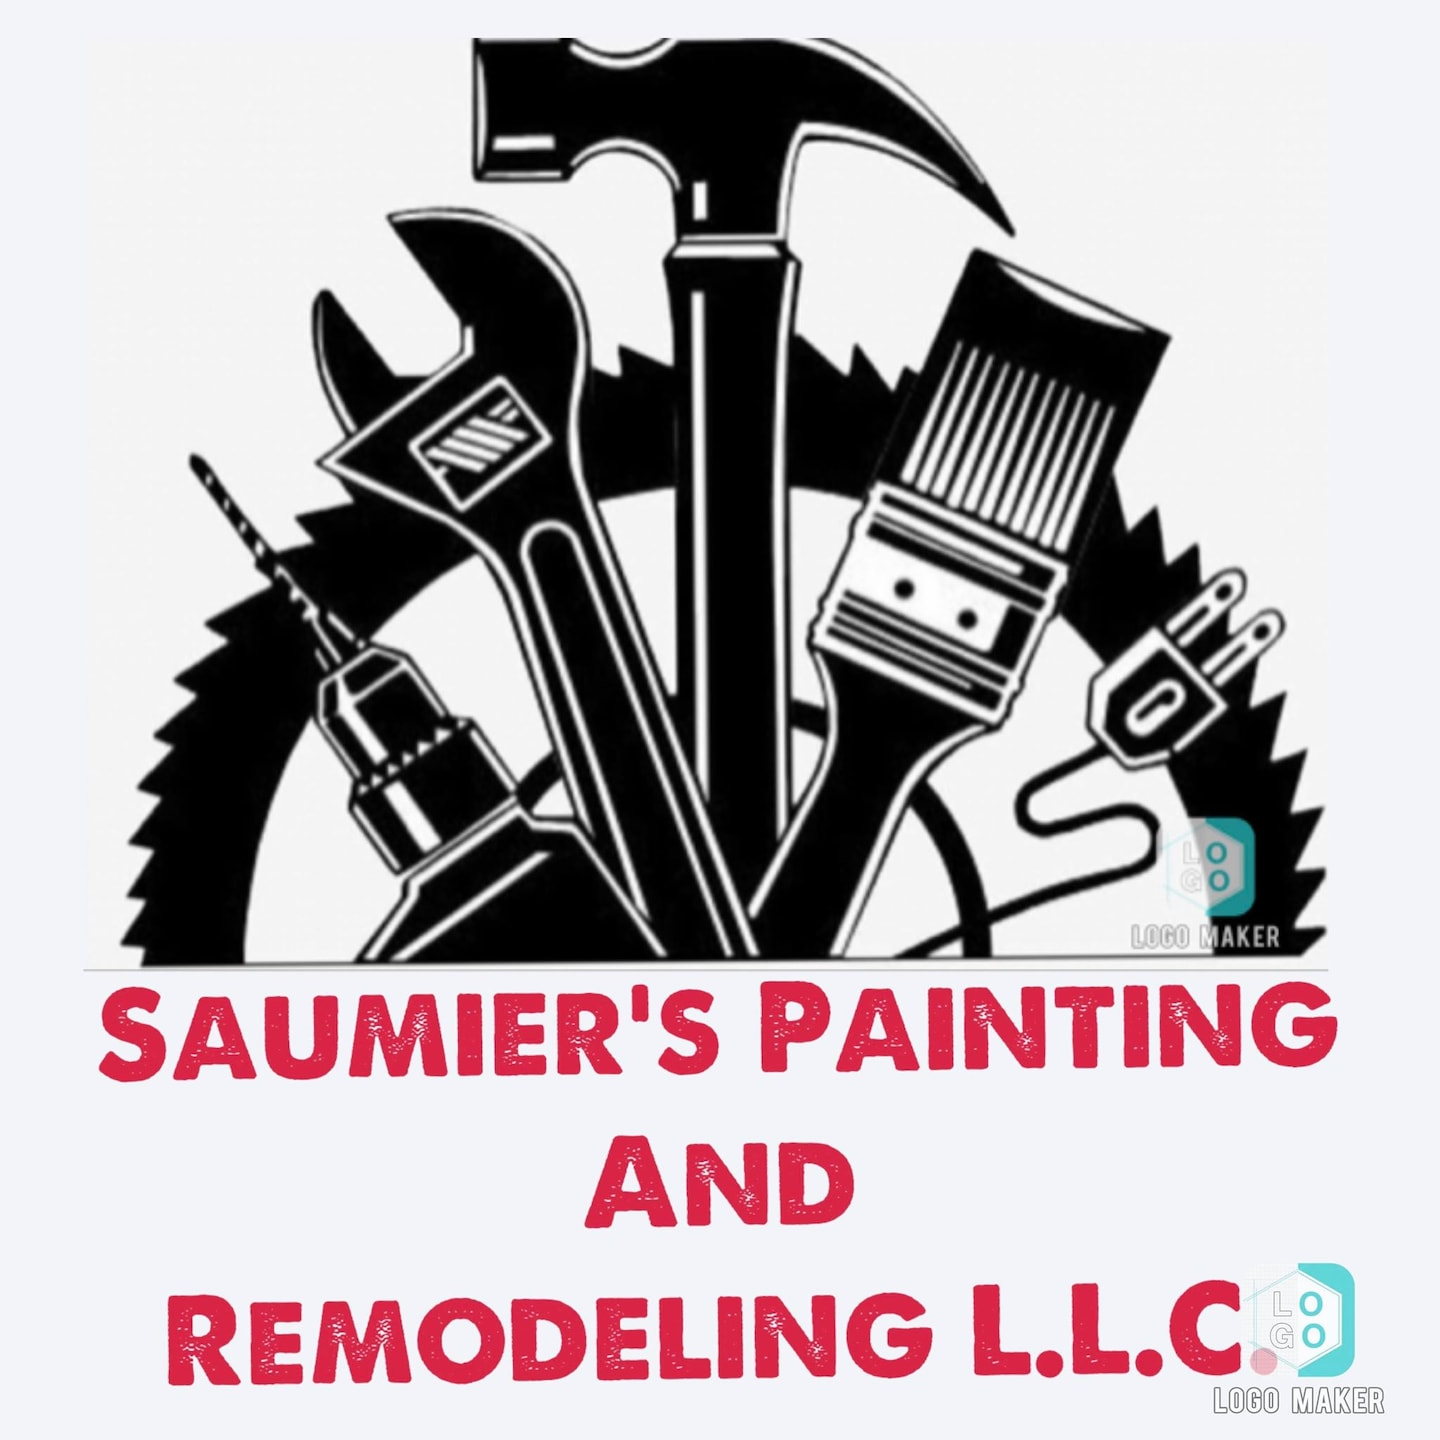 Saumier's Painting and Remodeling L.L.C.